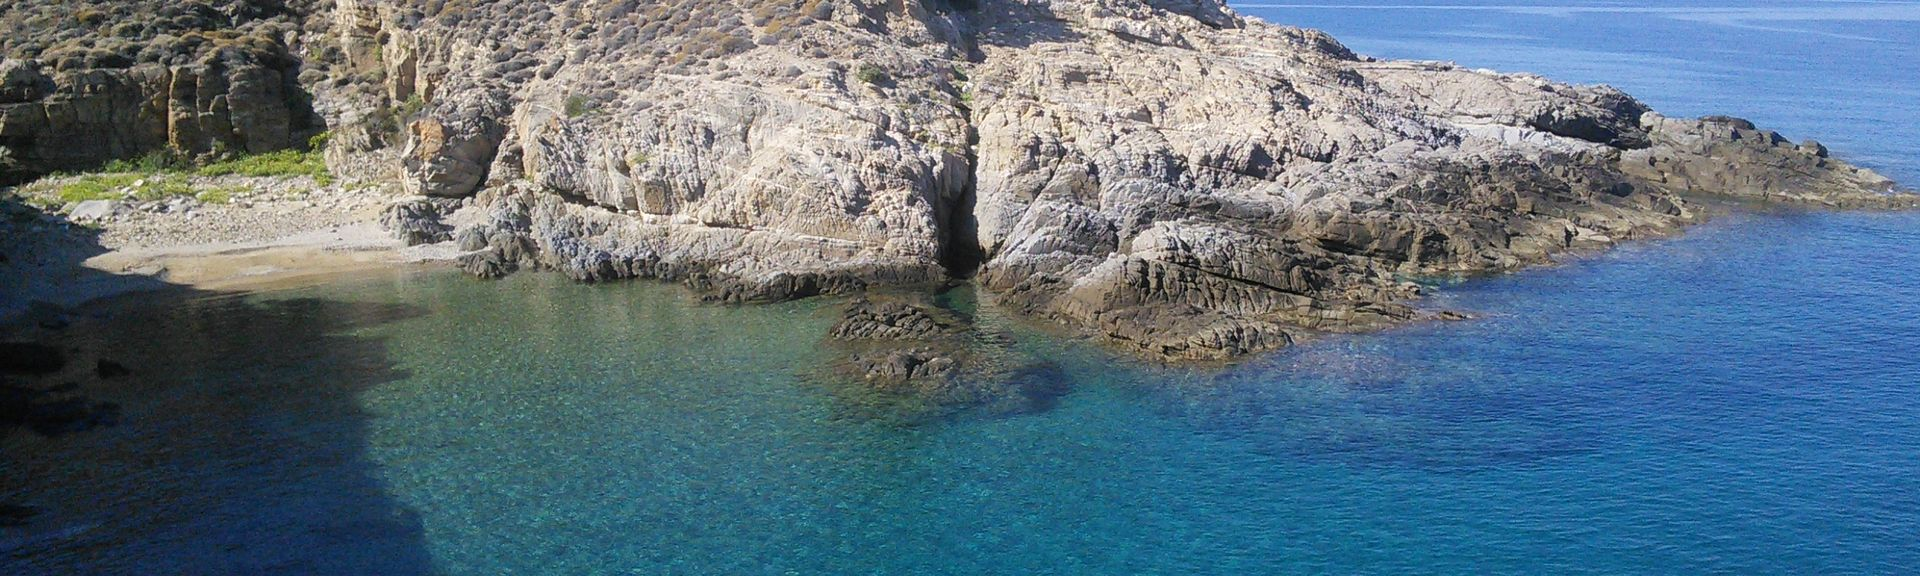 Armenistis, Ikaria, North Aegean Islands, Greece